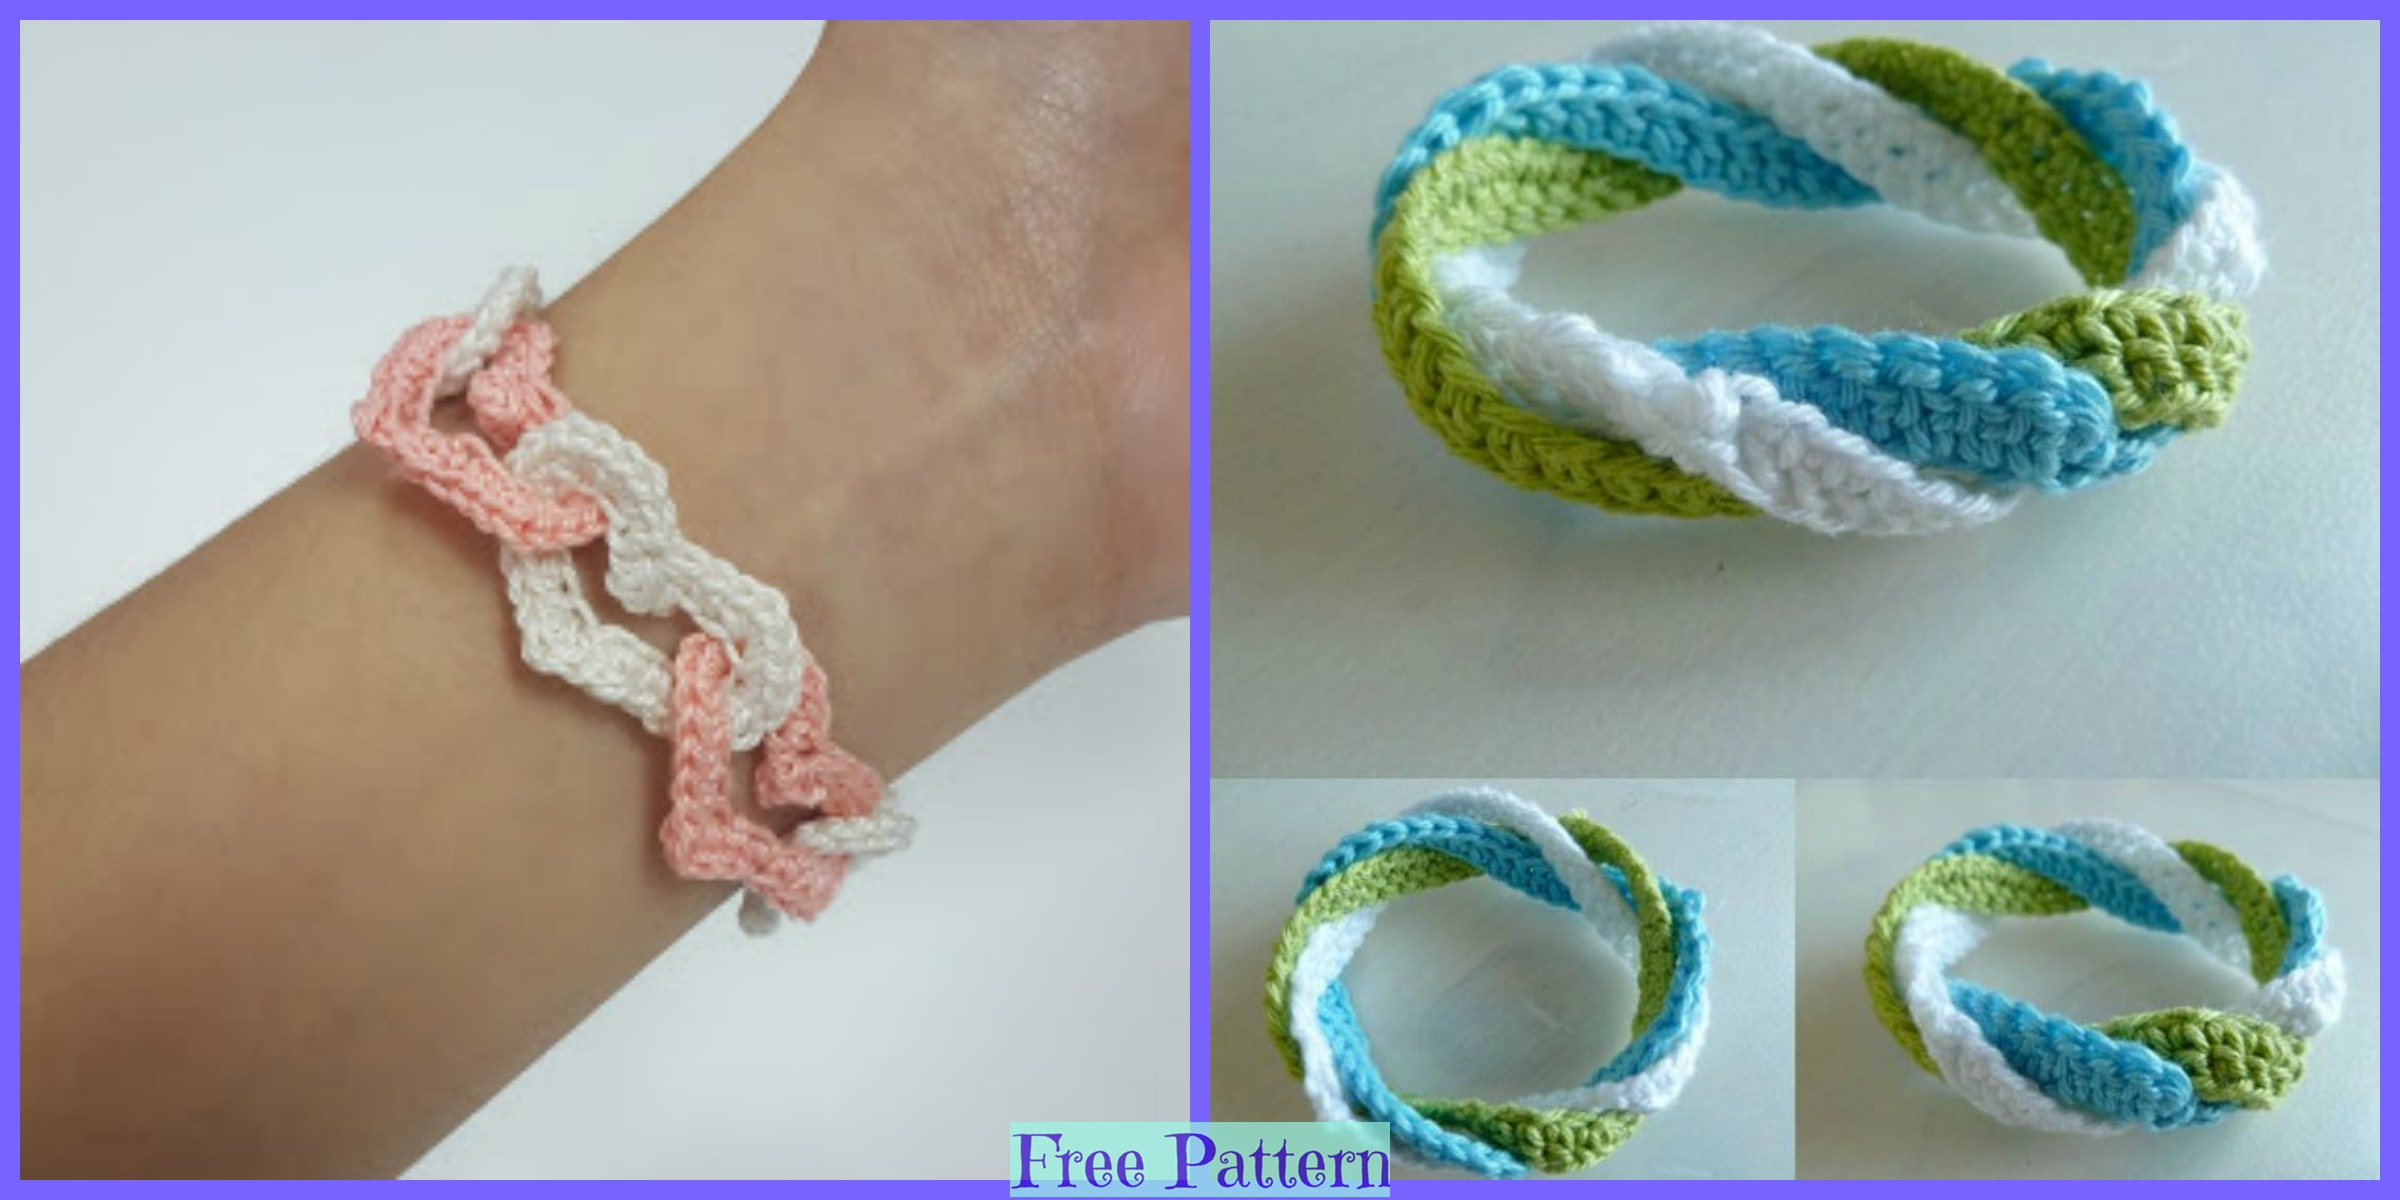 Cute Crochet Bracelets – Free Patterns